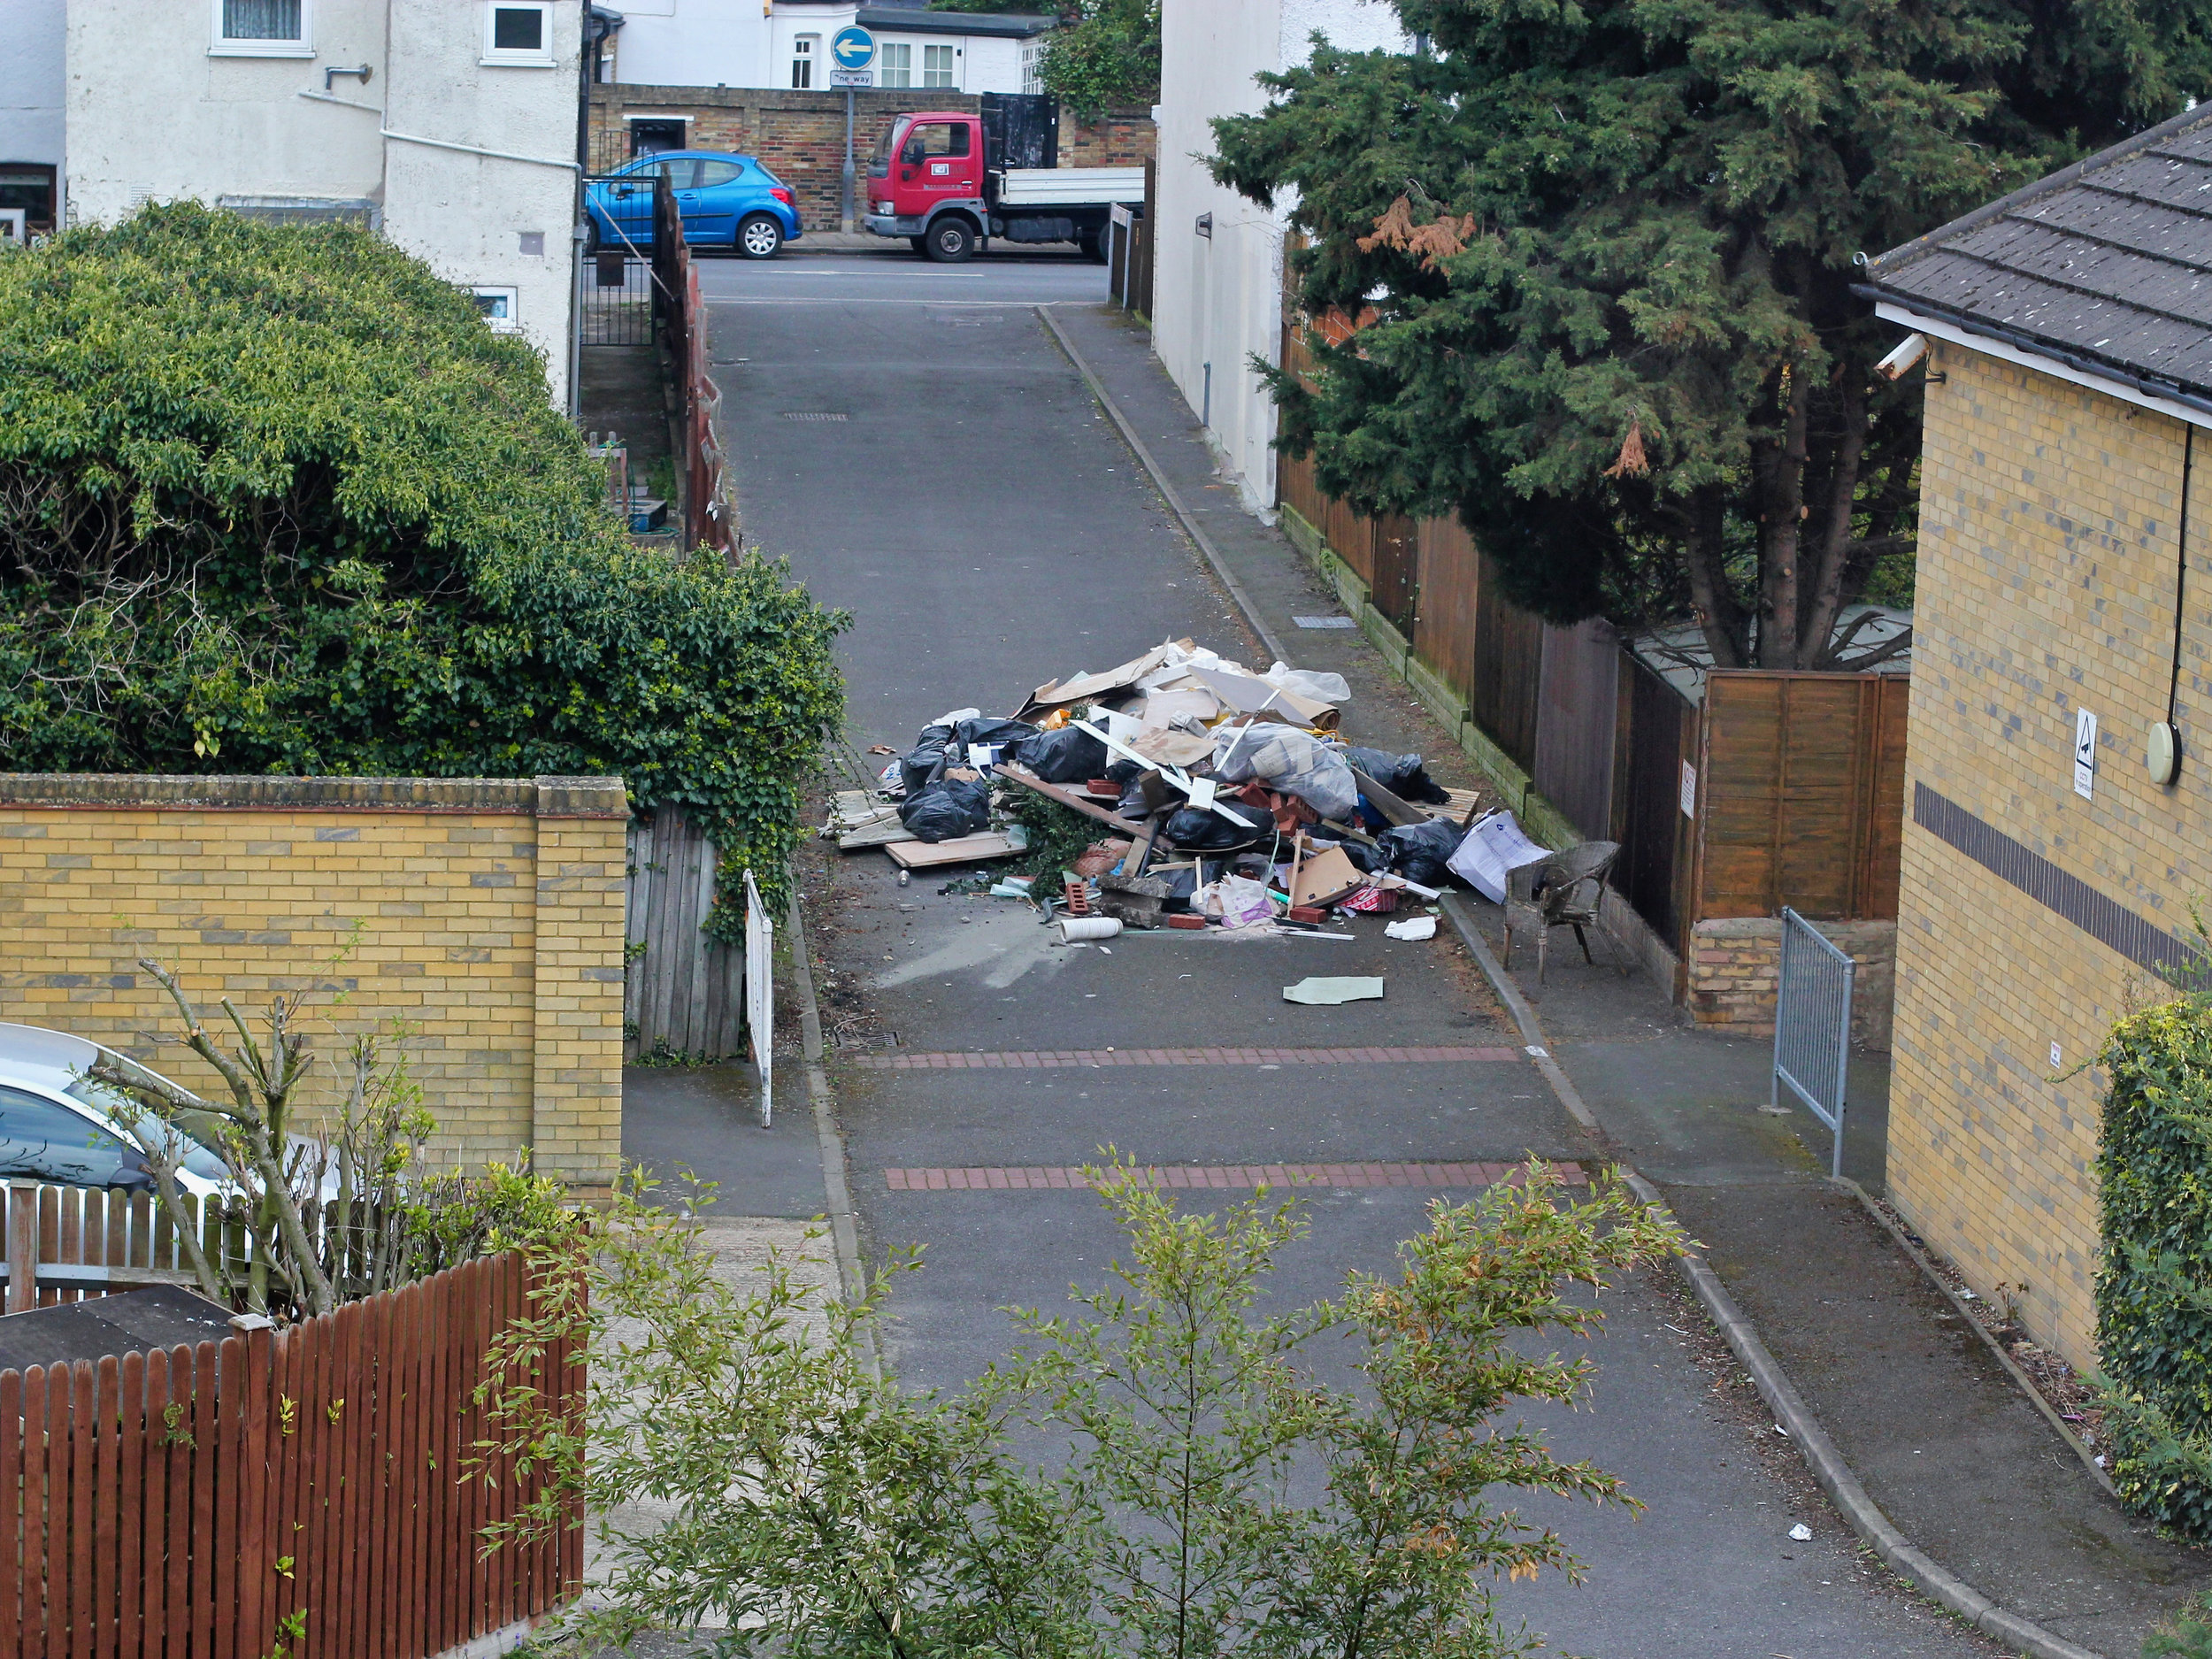 11.30 on Saturday morning and a truckload of waste is fly-tipped onto a residential access road. The offending vehicle is gone within a couple of minutes.